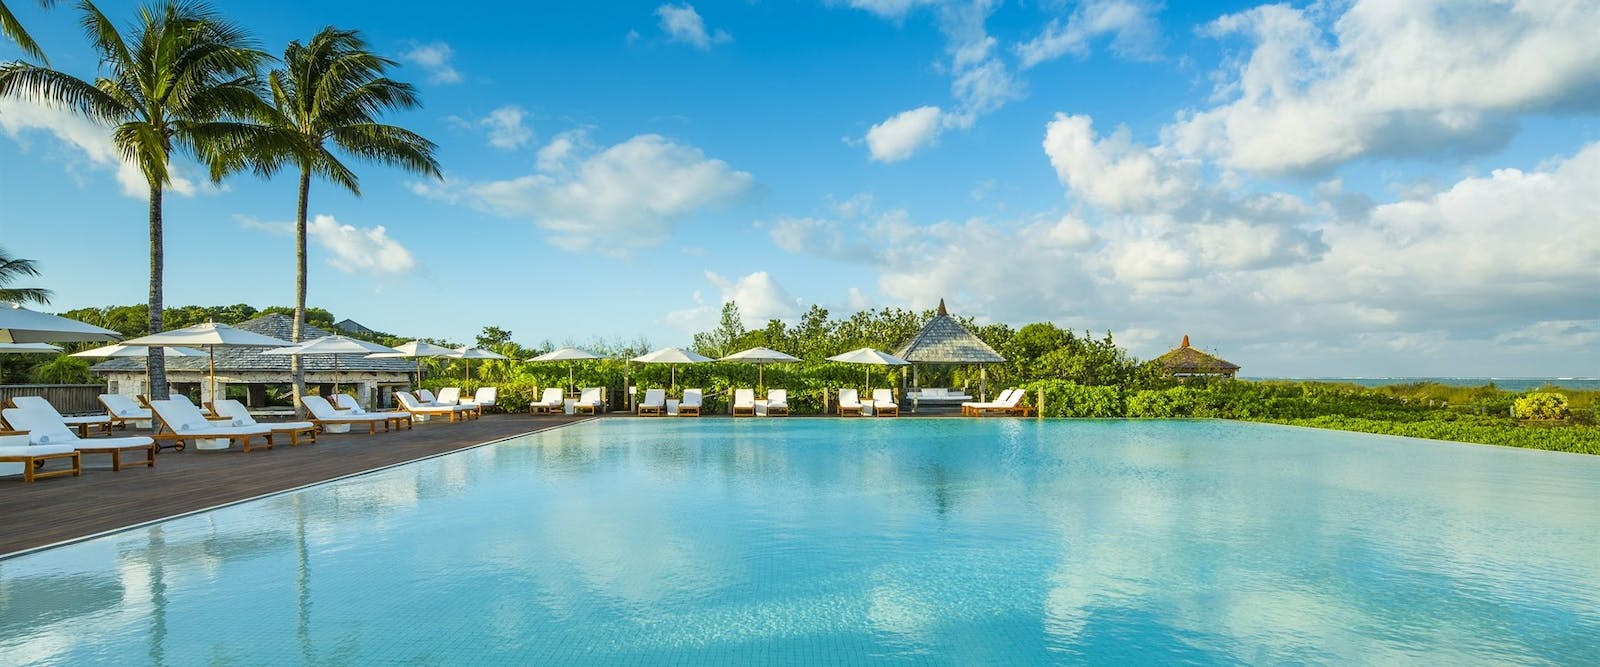 Main swimming pool at COMO Parrot Cay, Turks and Caicos